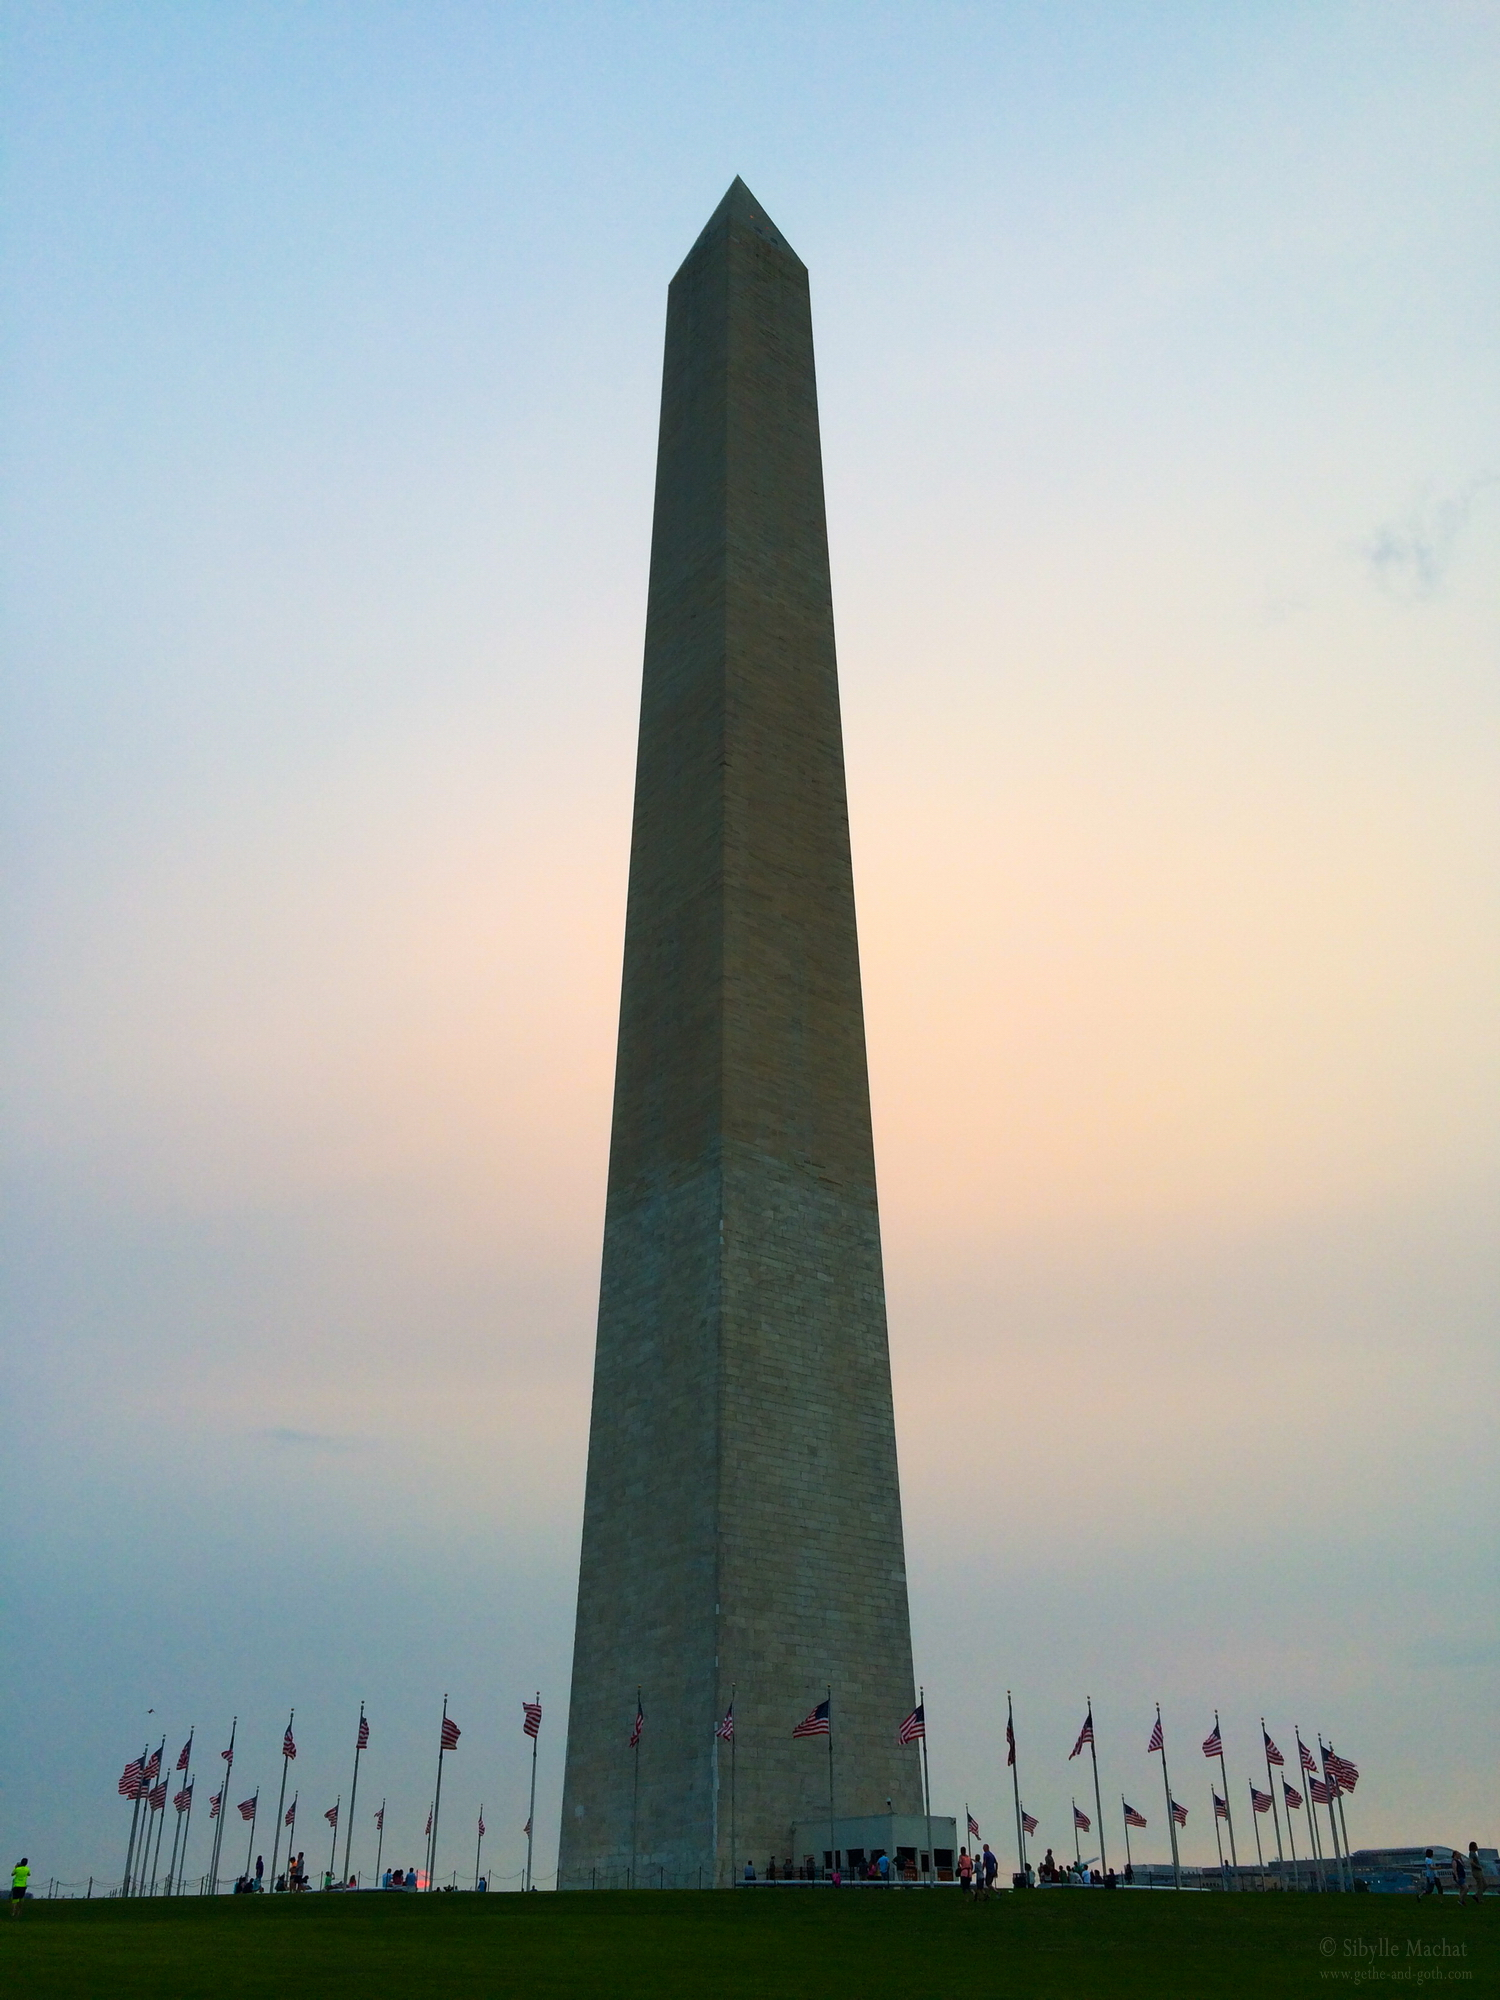 Evening at the Washington Monument